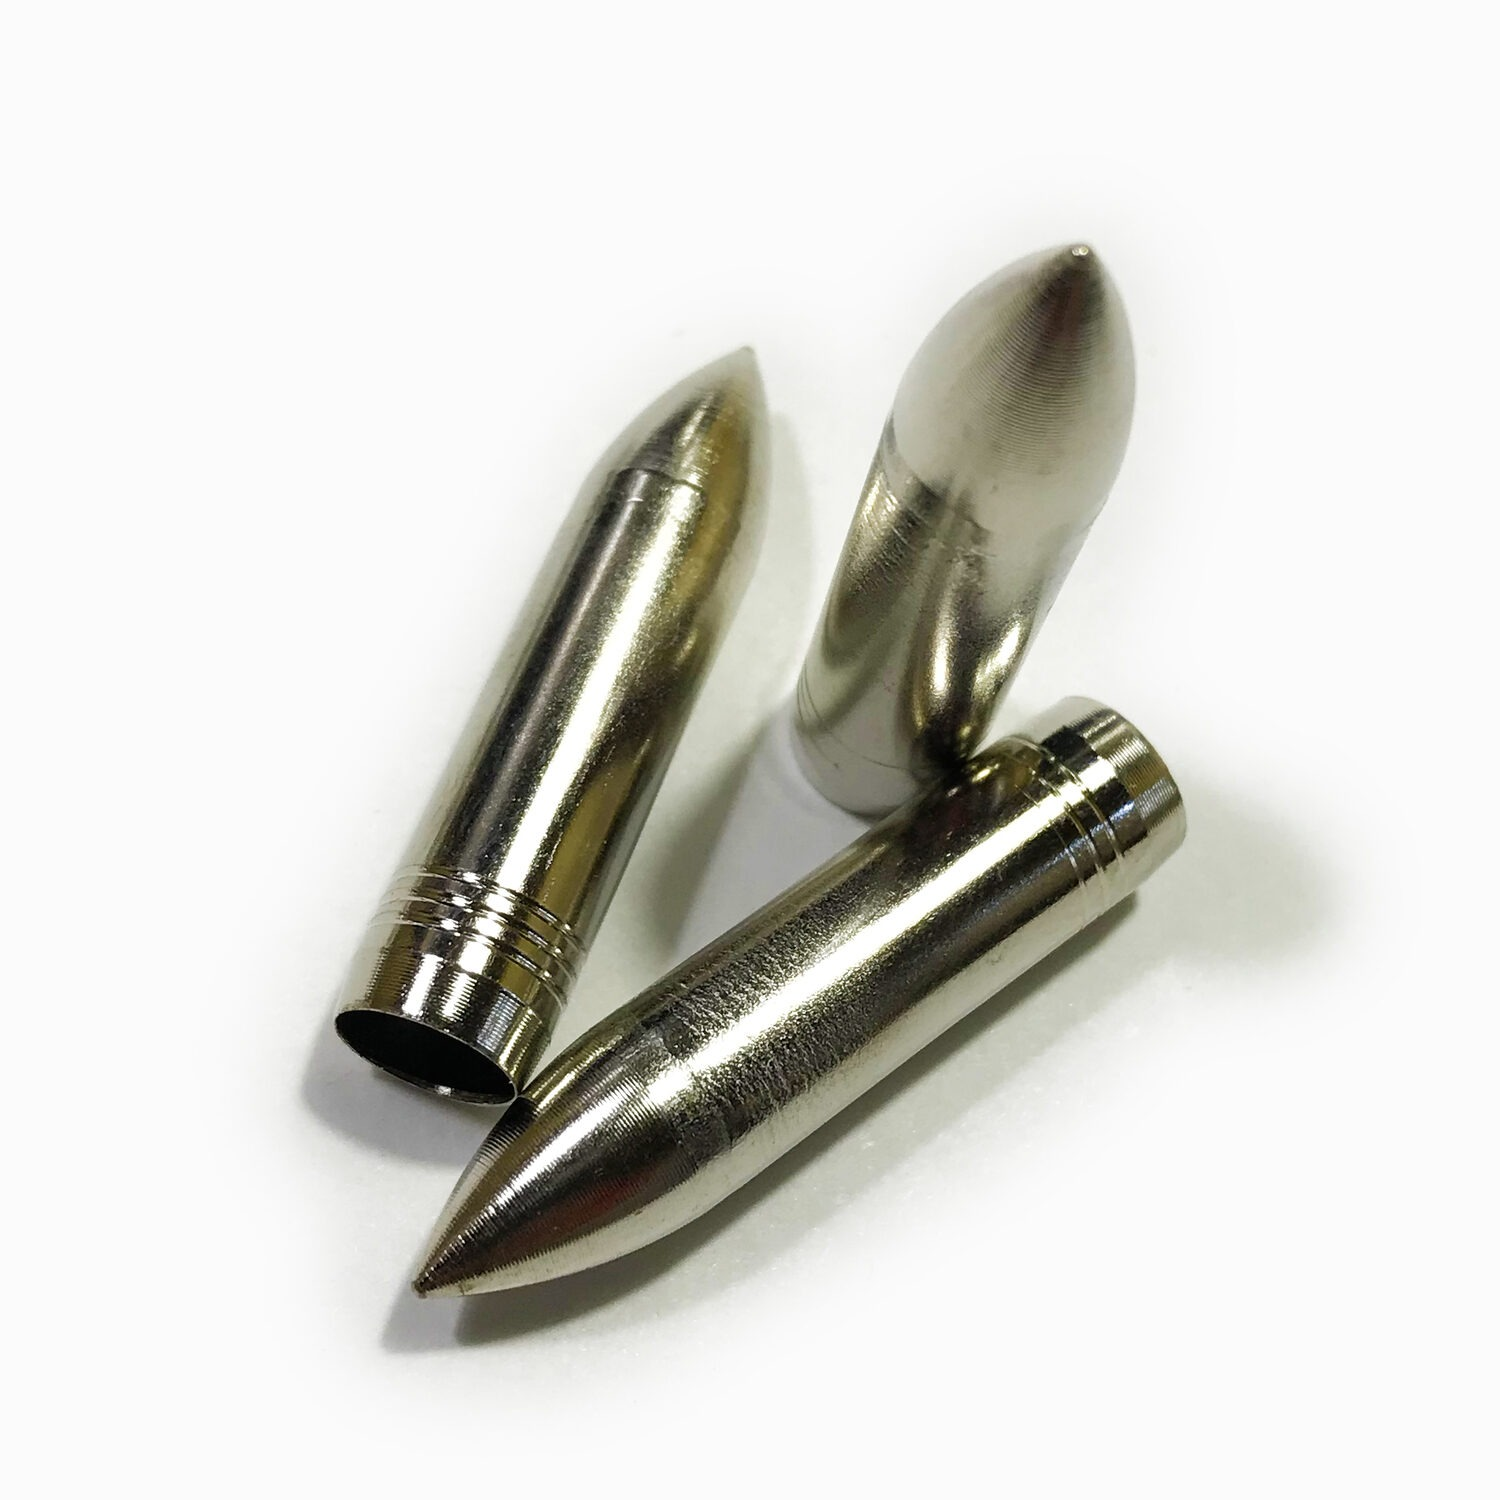 Archery Bullet Tip 8mm